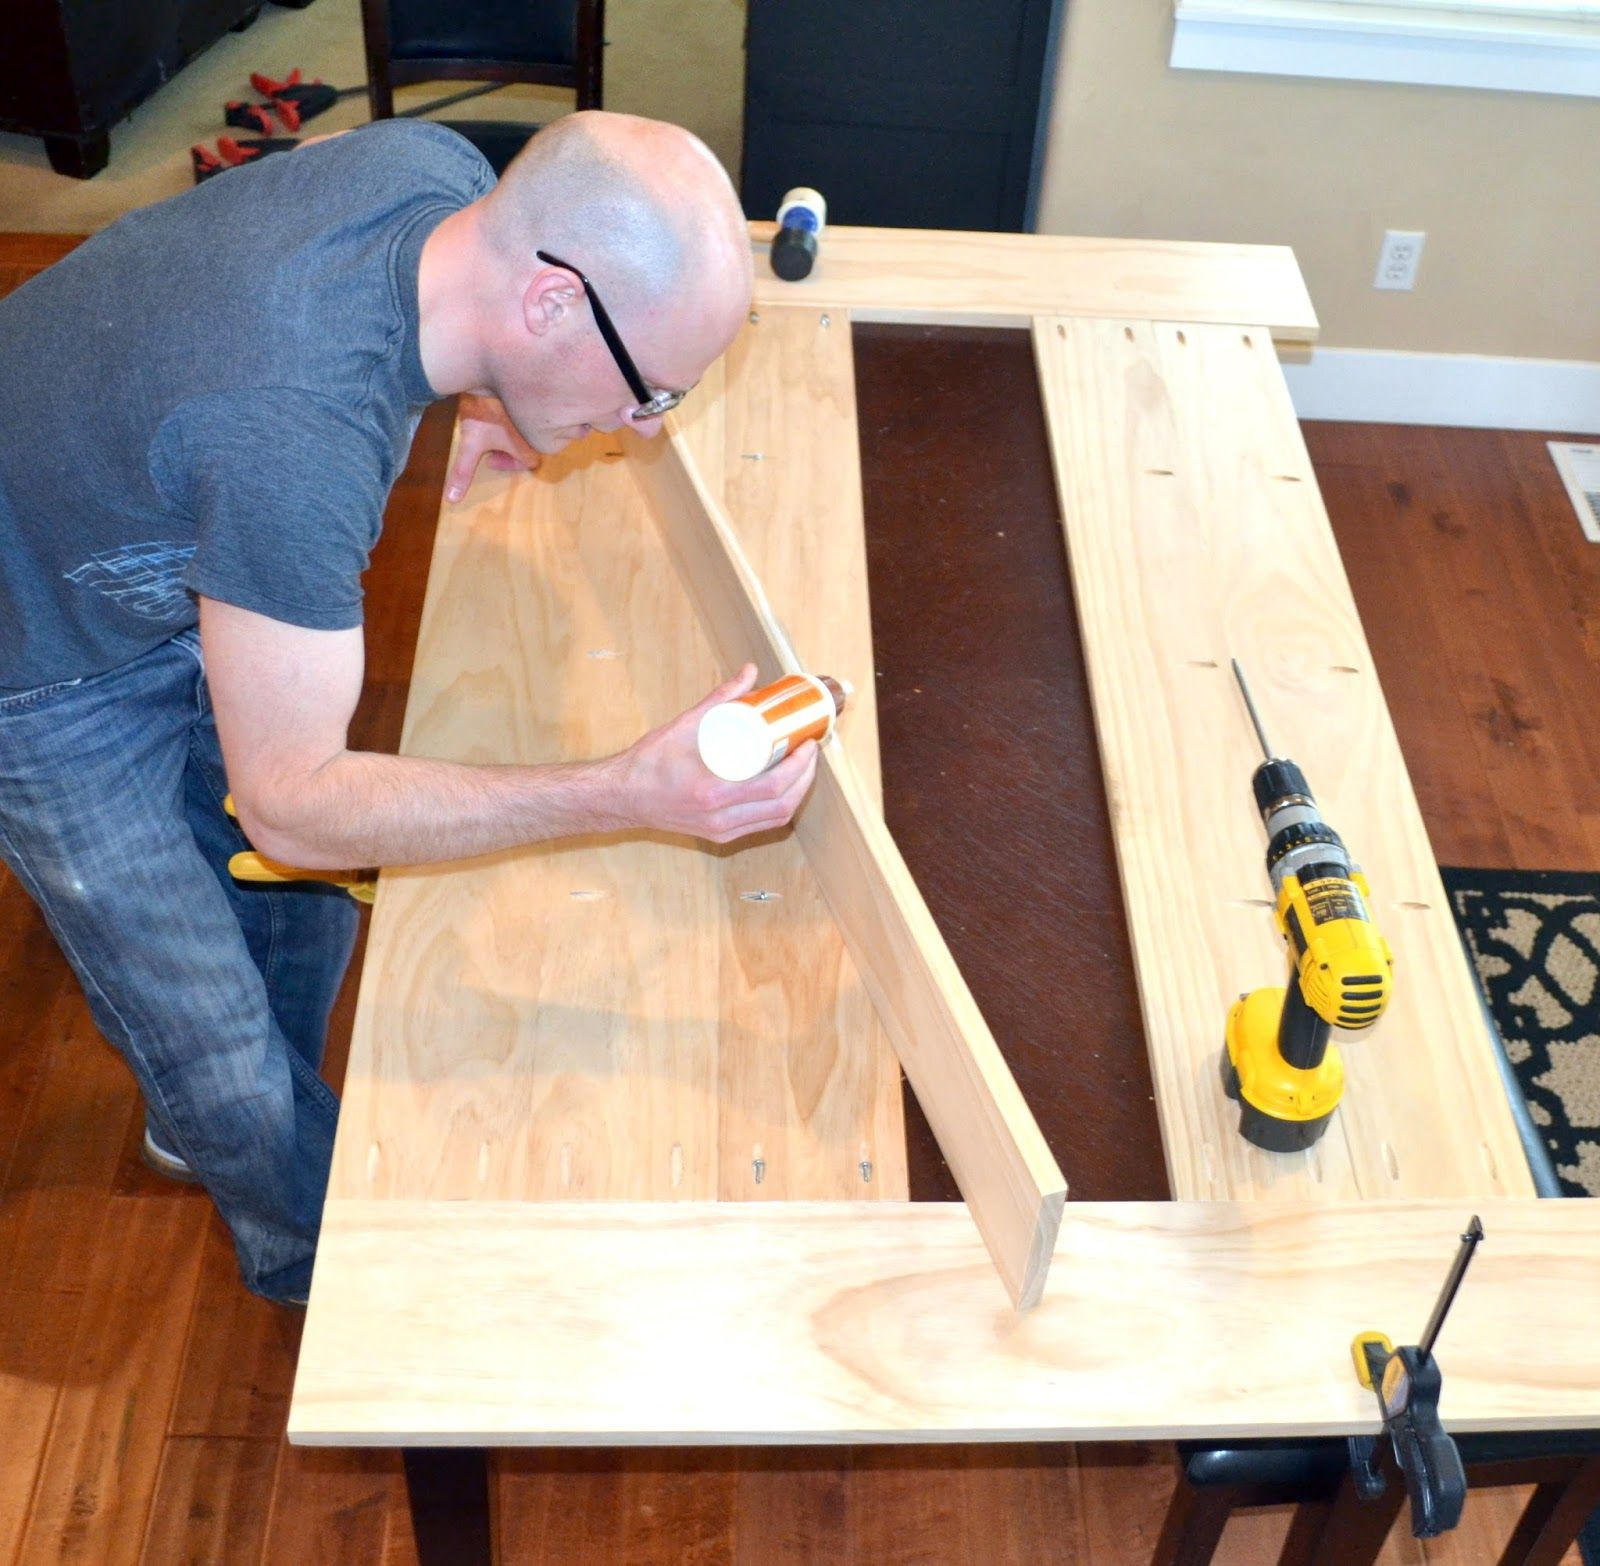 easy diy planked farm style table top that will cover your existing